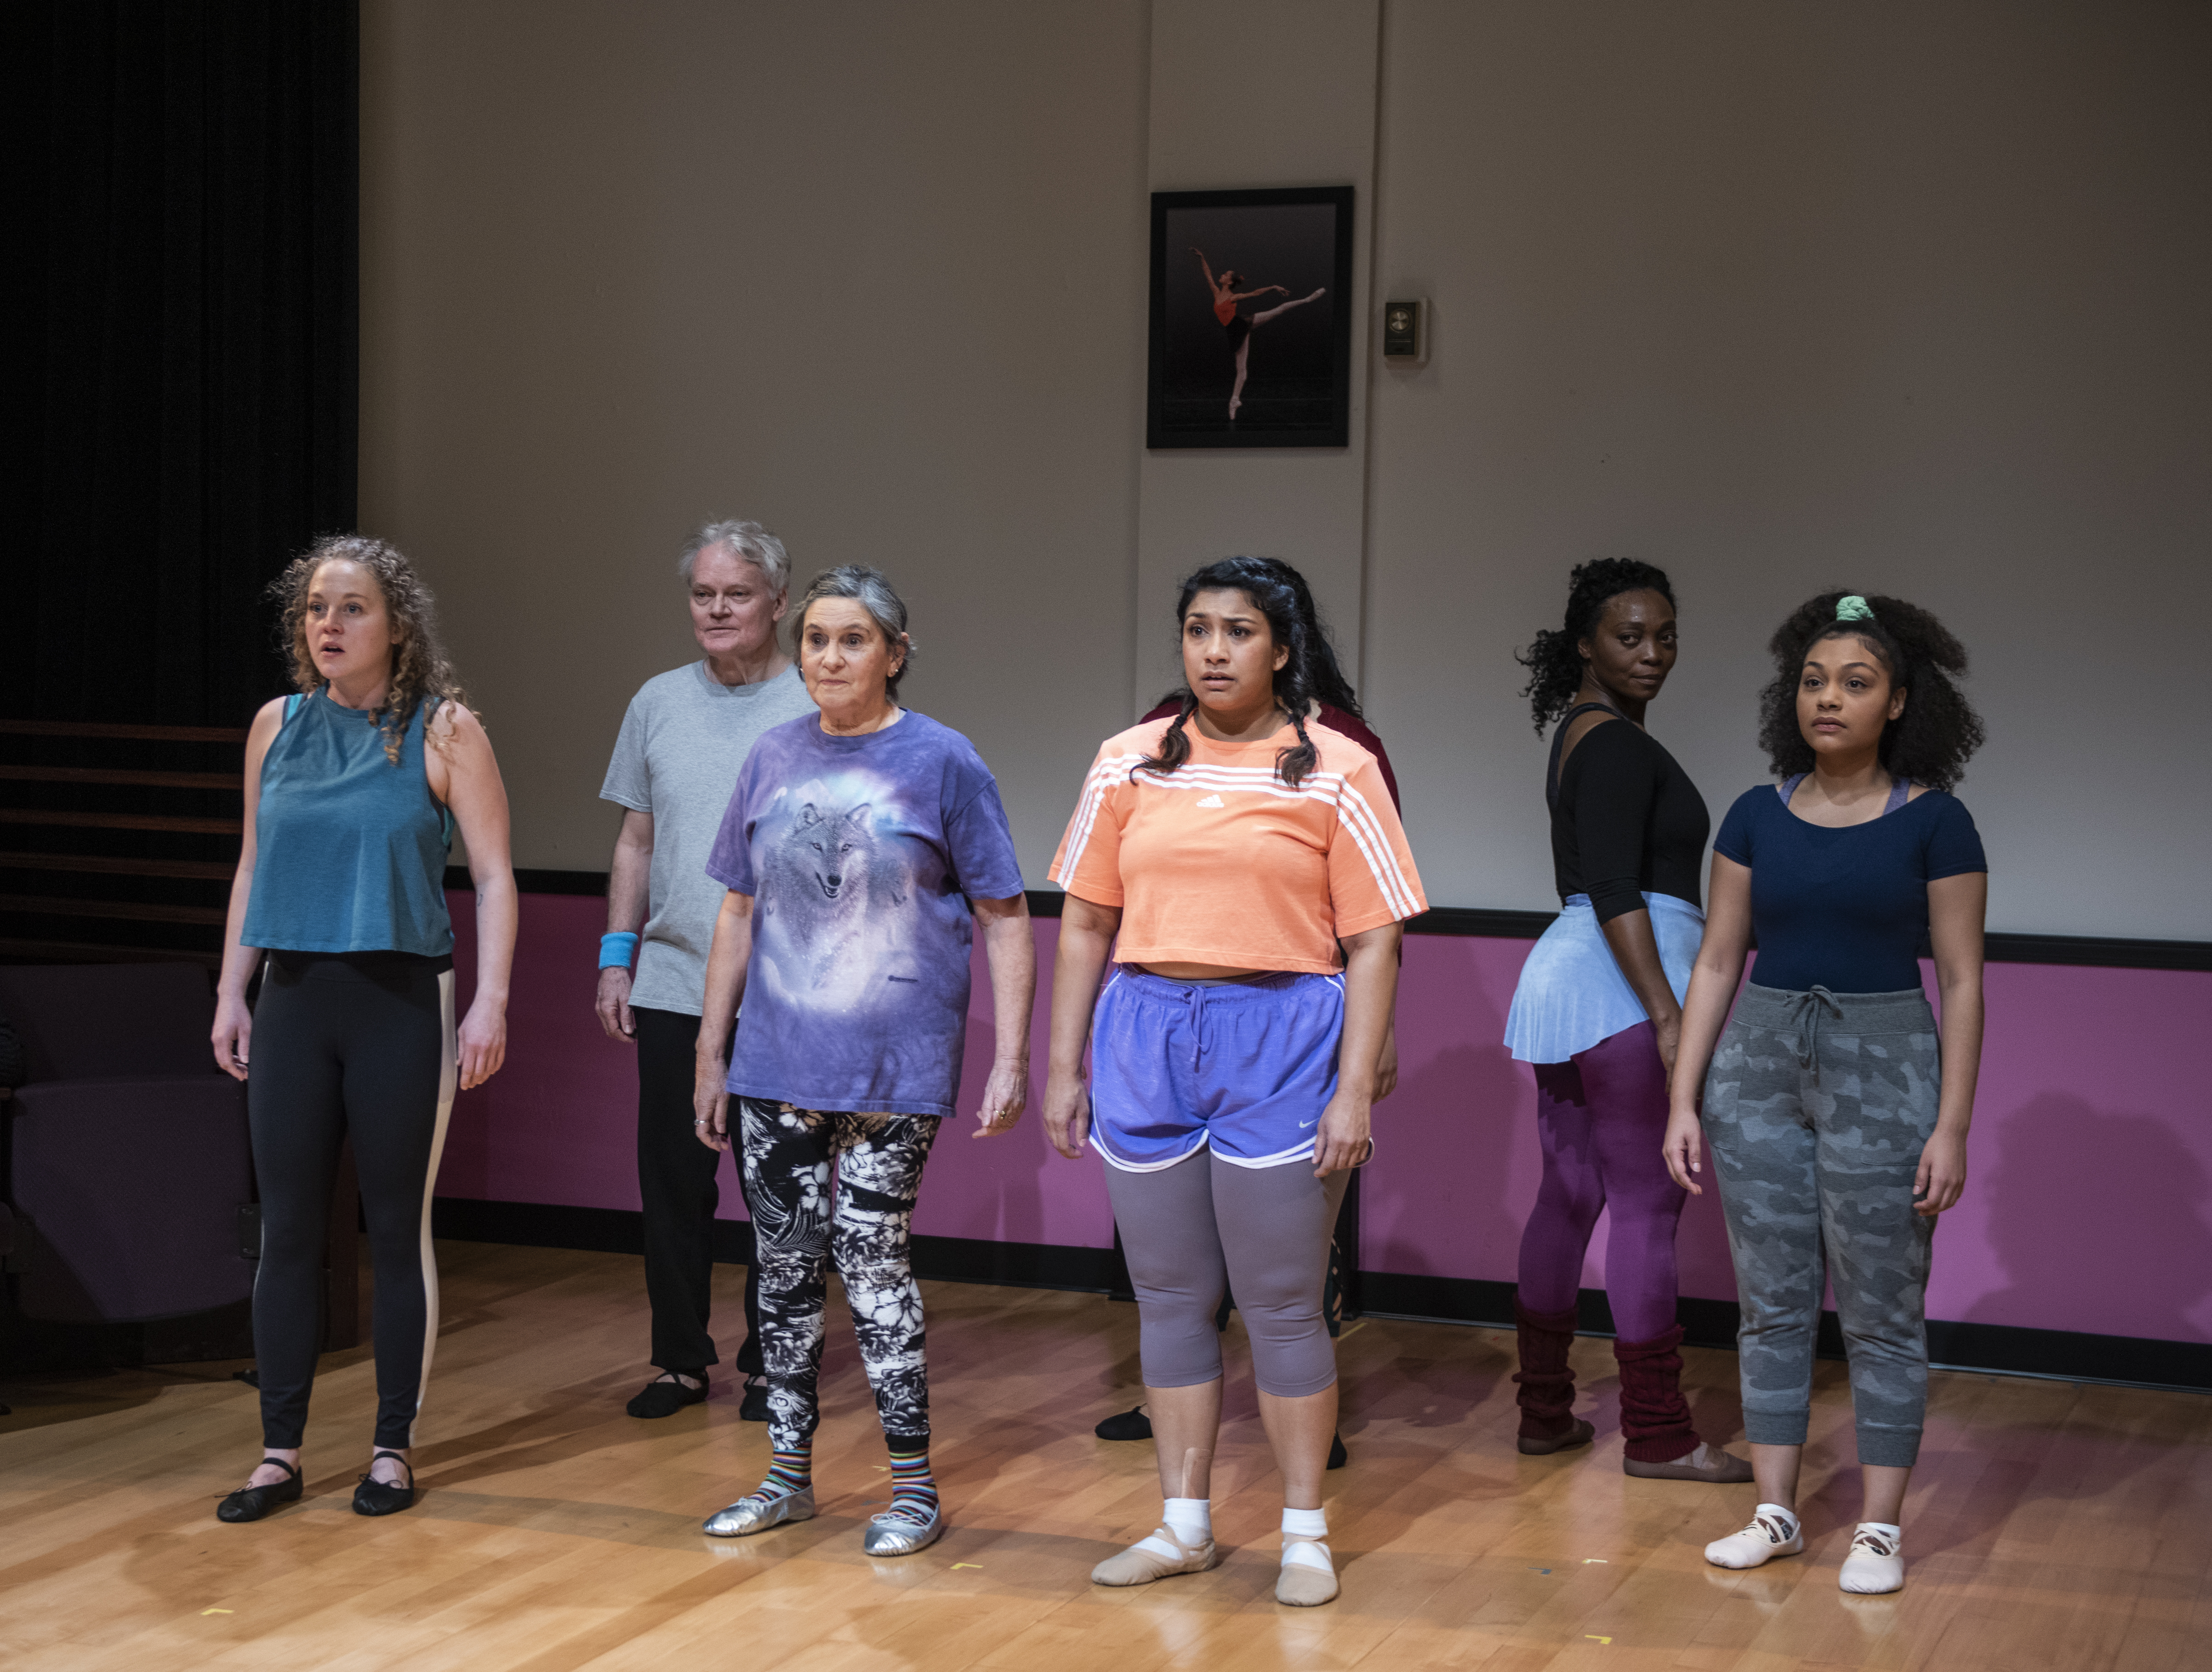 """The 13-year-olds in """"Dance Nation"""" at Steppenwolf Upstairs Theatre are played by adult actors Caroline Neff, Torrey Hanson, Ellen Maddow, Adithi Chandrashekar, Shanésia Davis and Ariana Burks."""